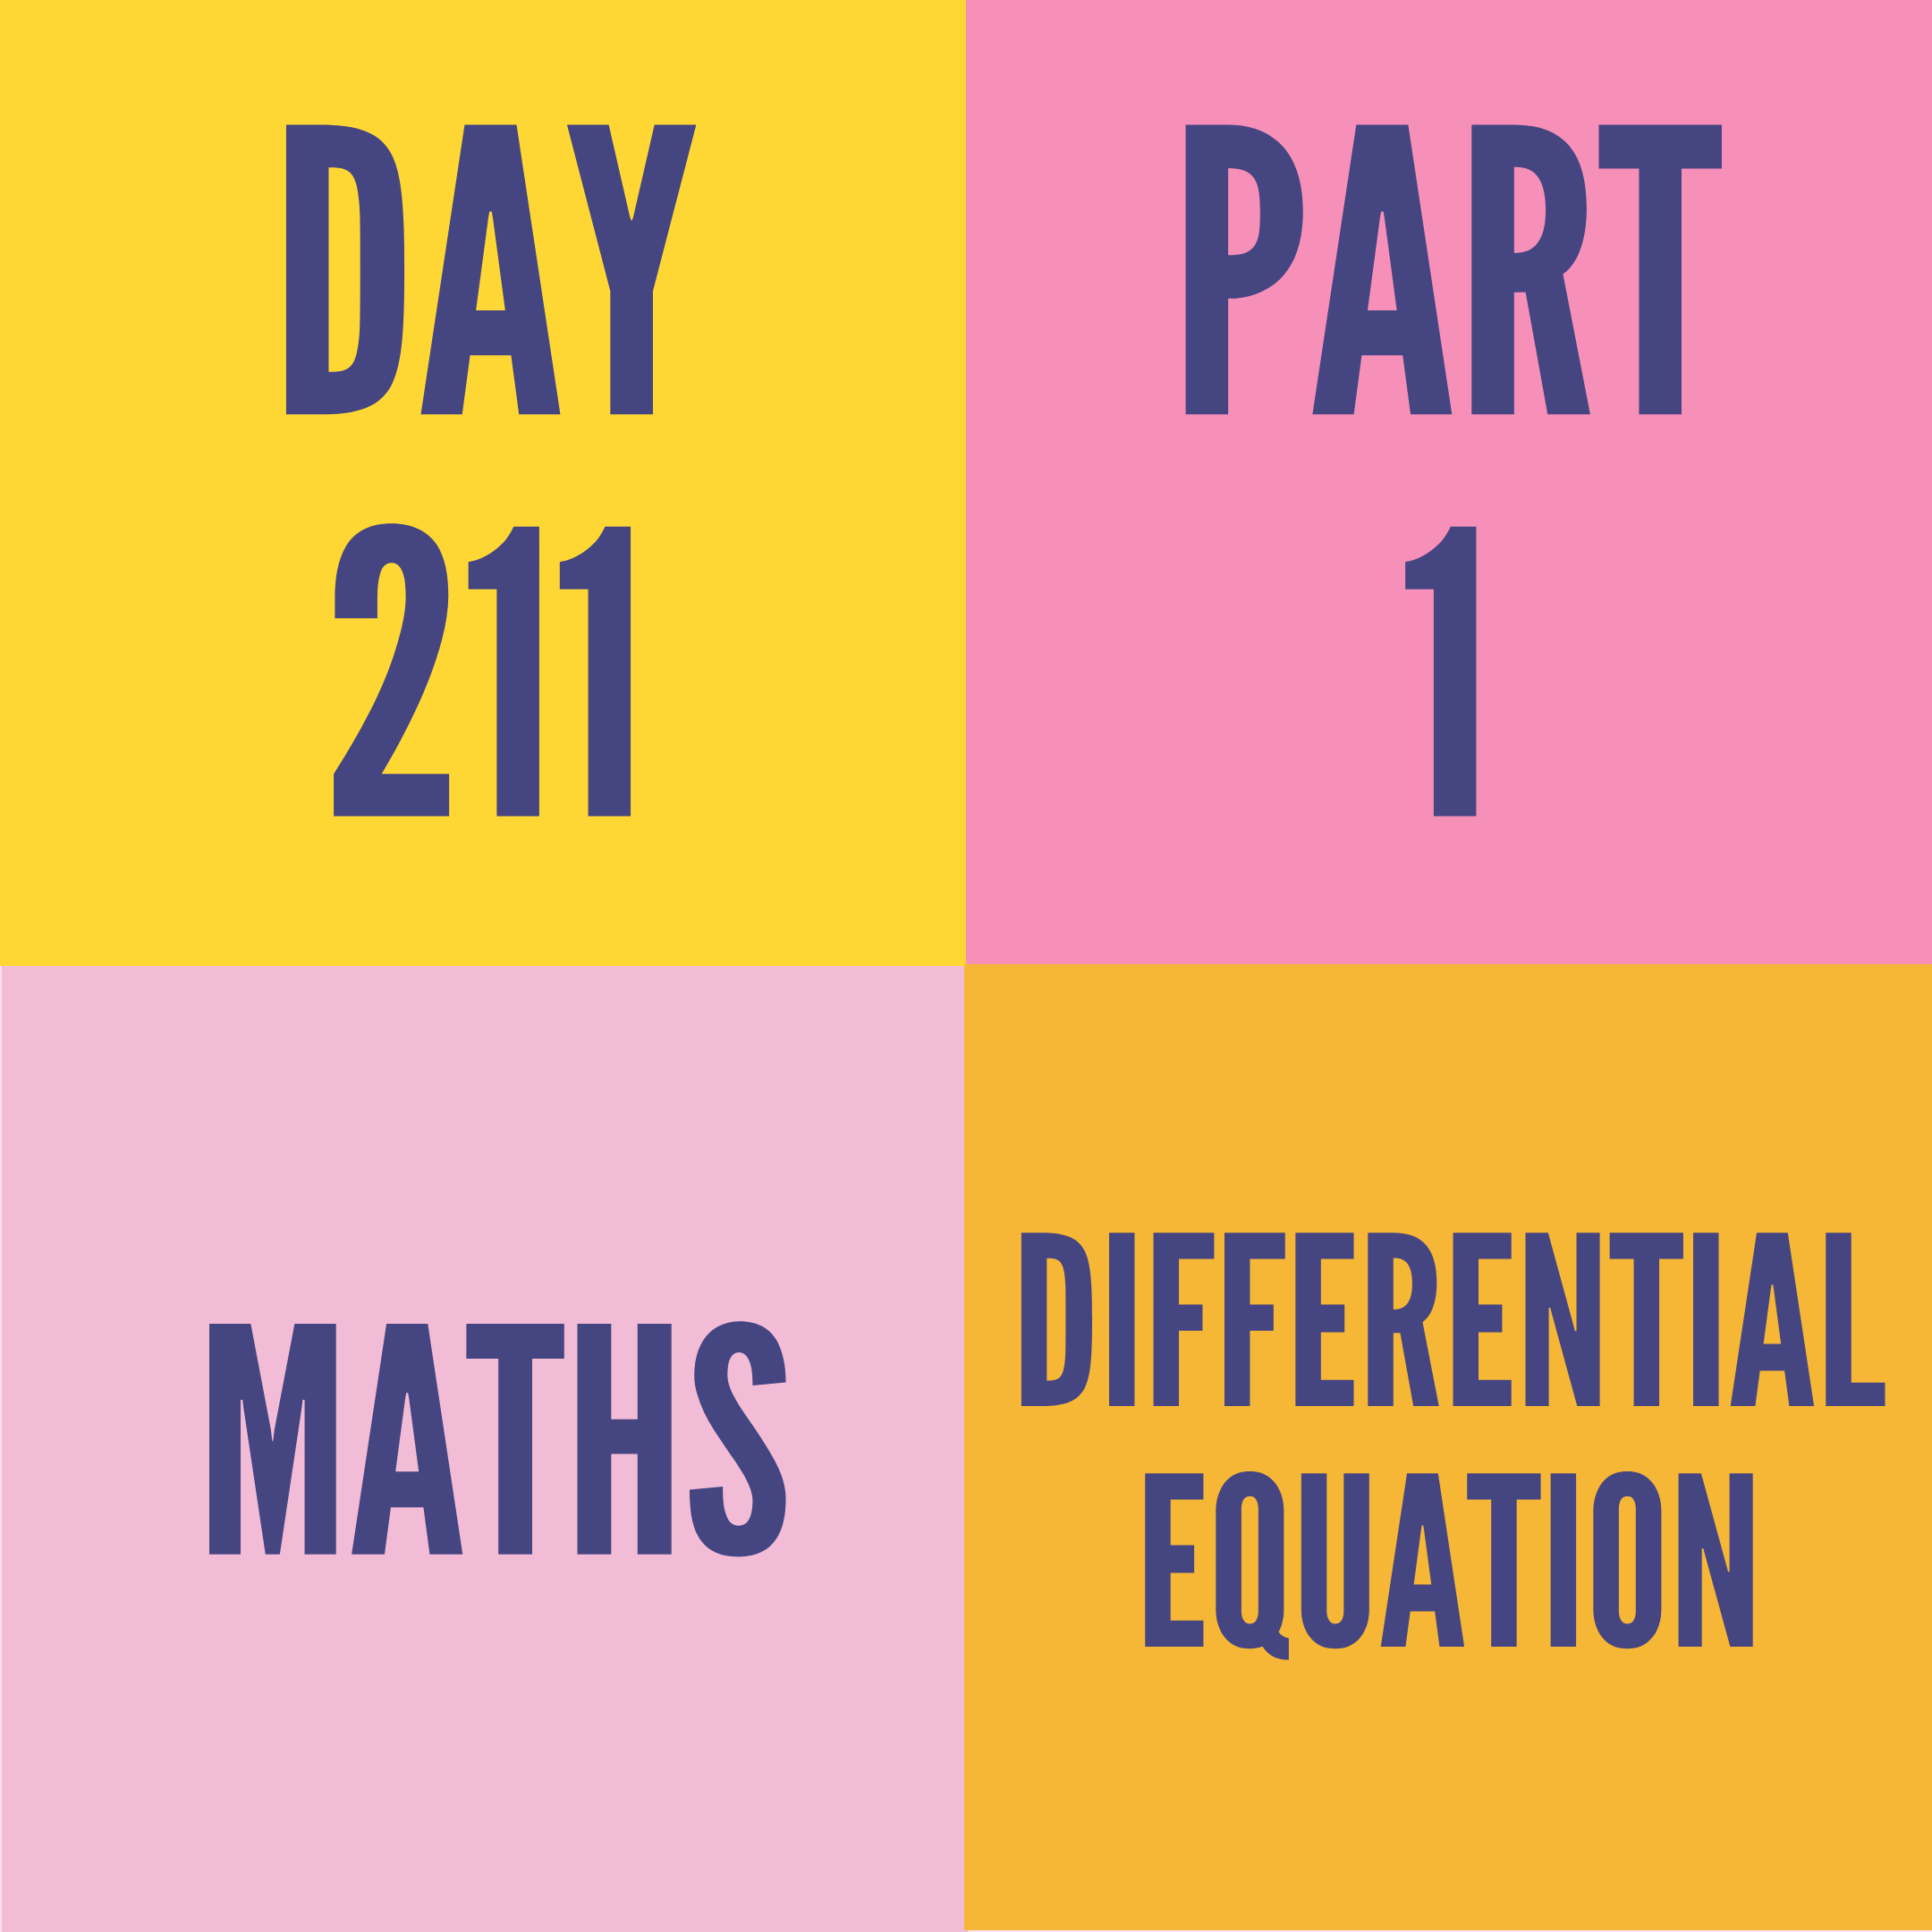 DAY-211 PART-1(TARGET) DIFFERENTIAL EQUATION